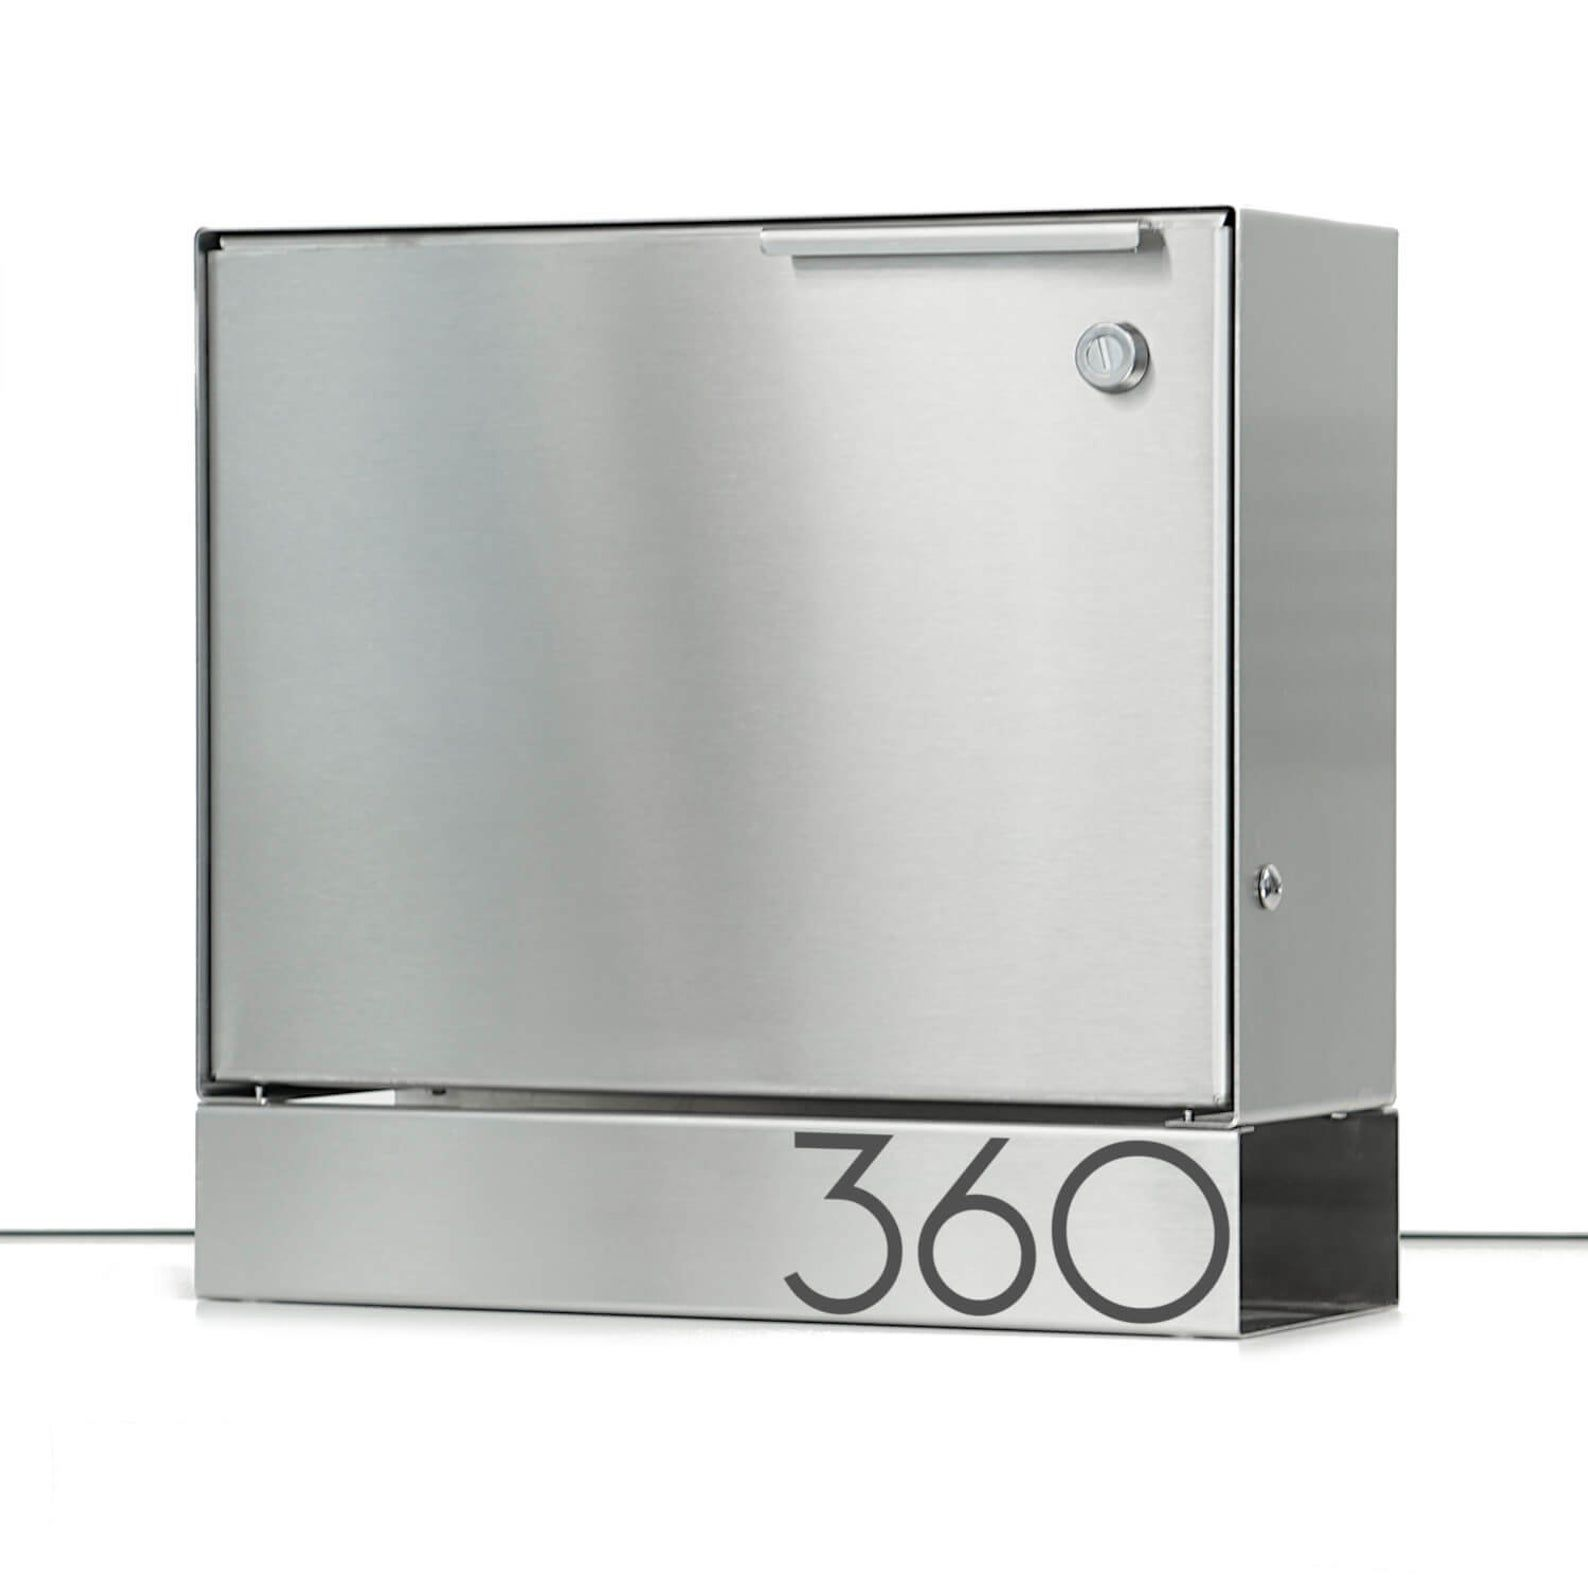 Larger Modern Mailbox Stainless Steel Design Large Wall Etsy